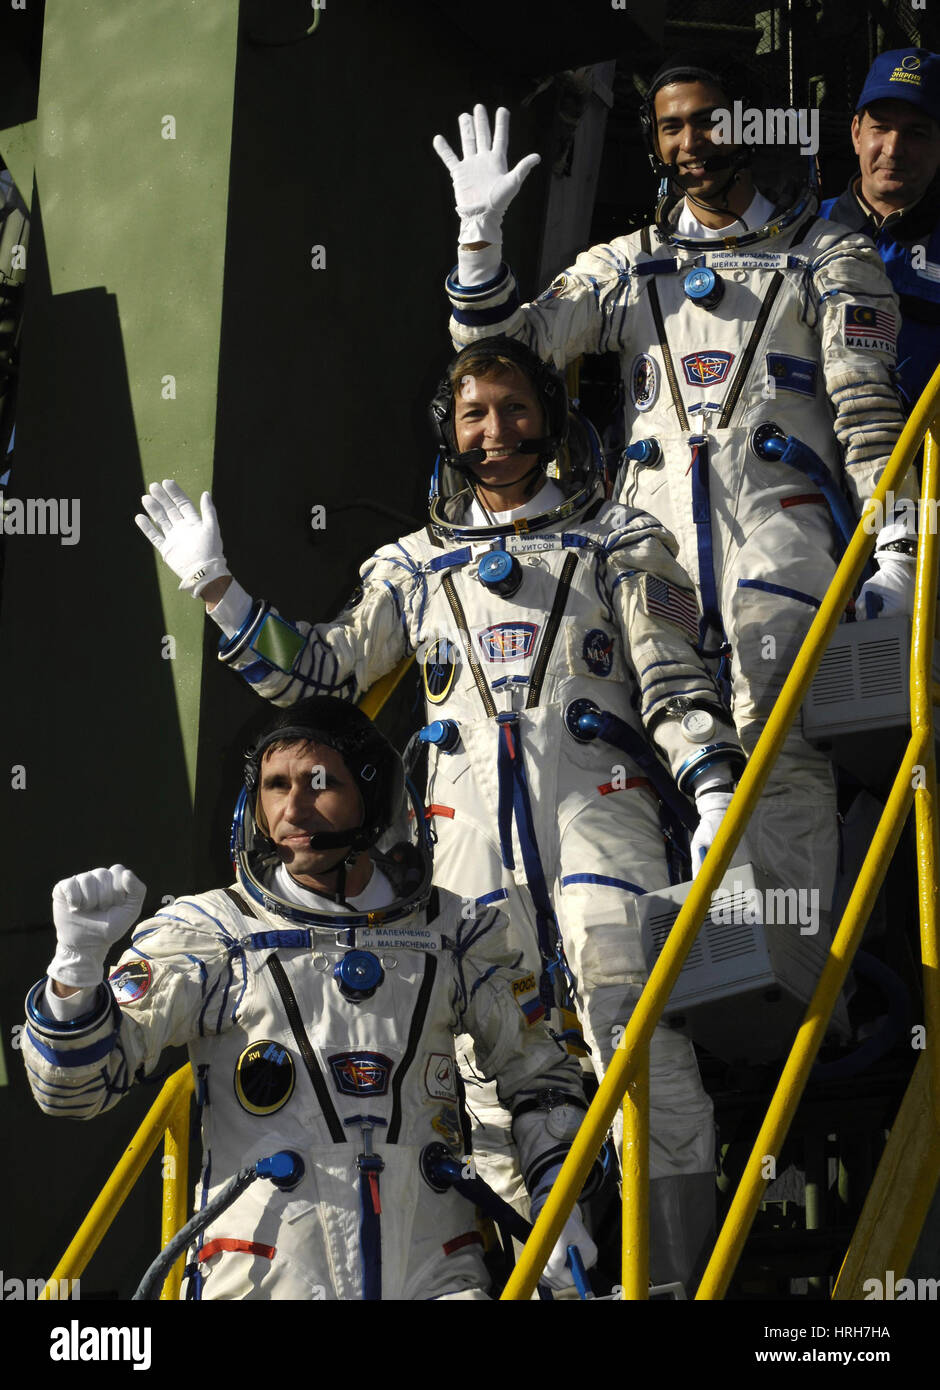 ISS Expedition 16 crew - Stock Image